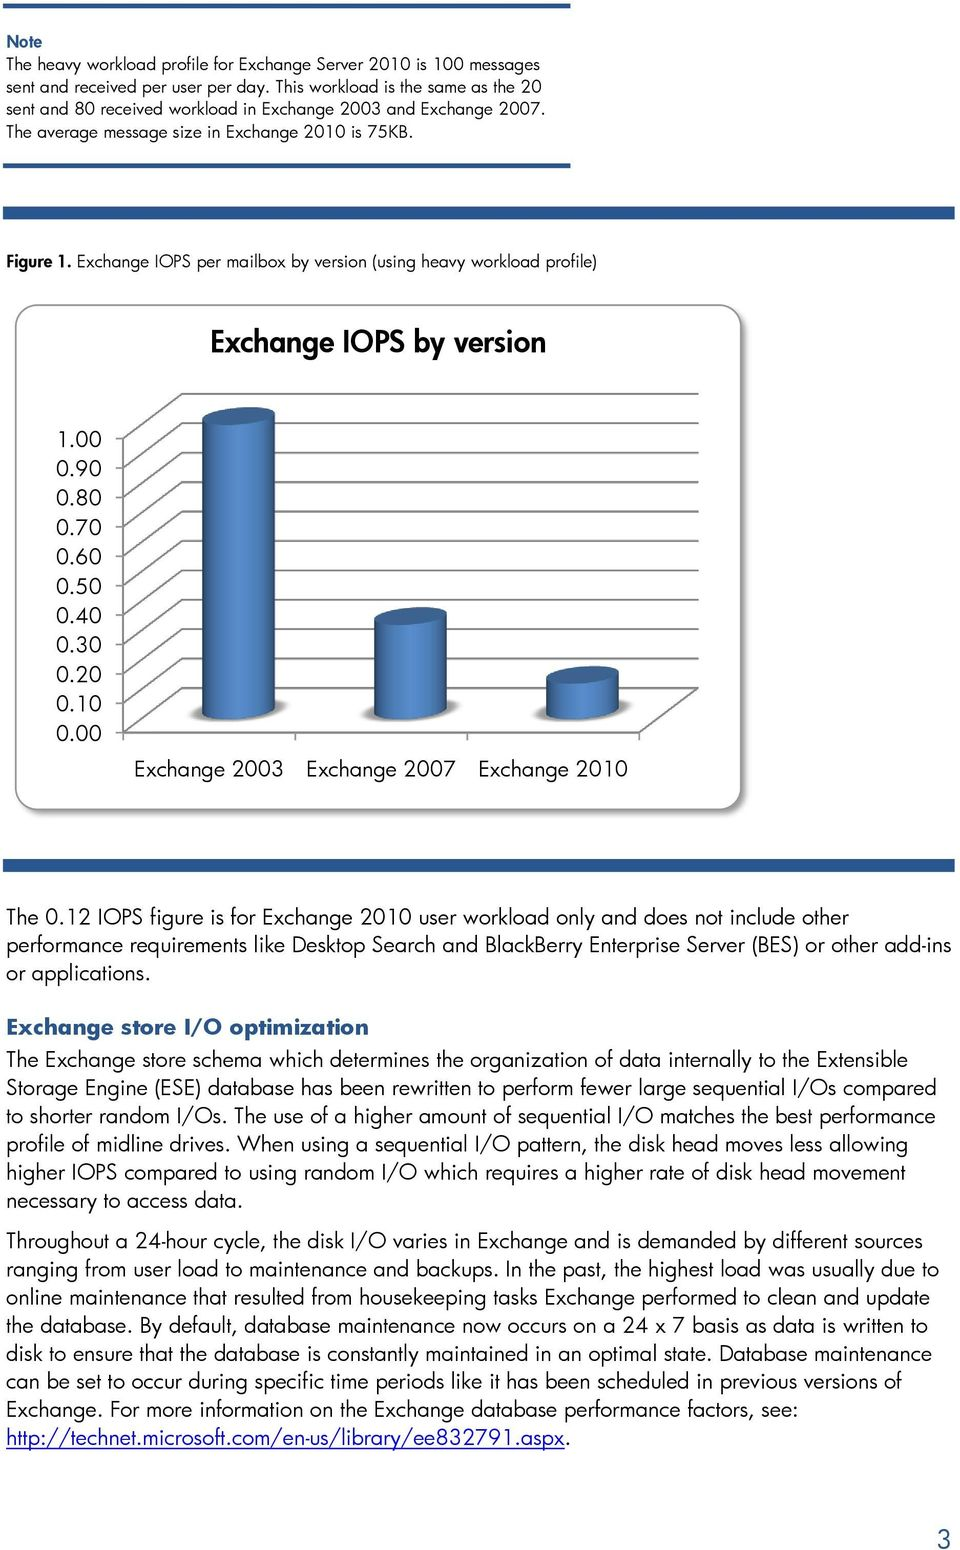 Exchange IOPS per mailbox by version (using heavy workload profile) Exchange IOPS by version 1.00 0.90 0.80 0.70 0.60 0.50 0.40 0.30 0.20 0.10 0.00 Exchange 2003 Exchange 2007 Exchange 2010 The 0.